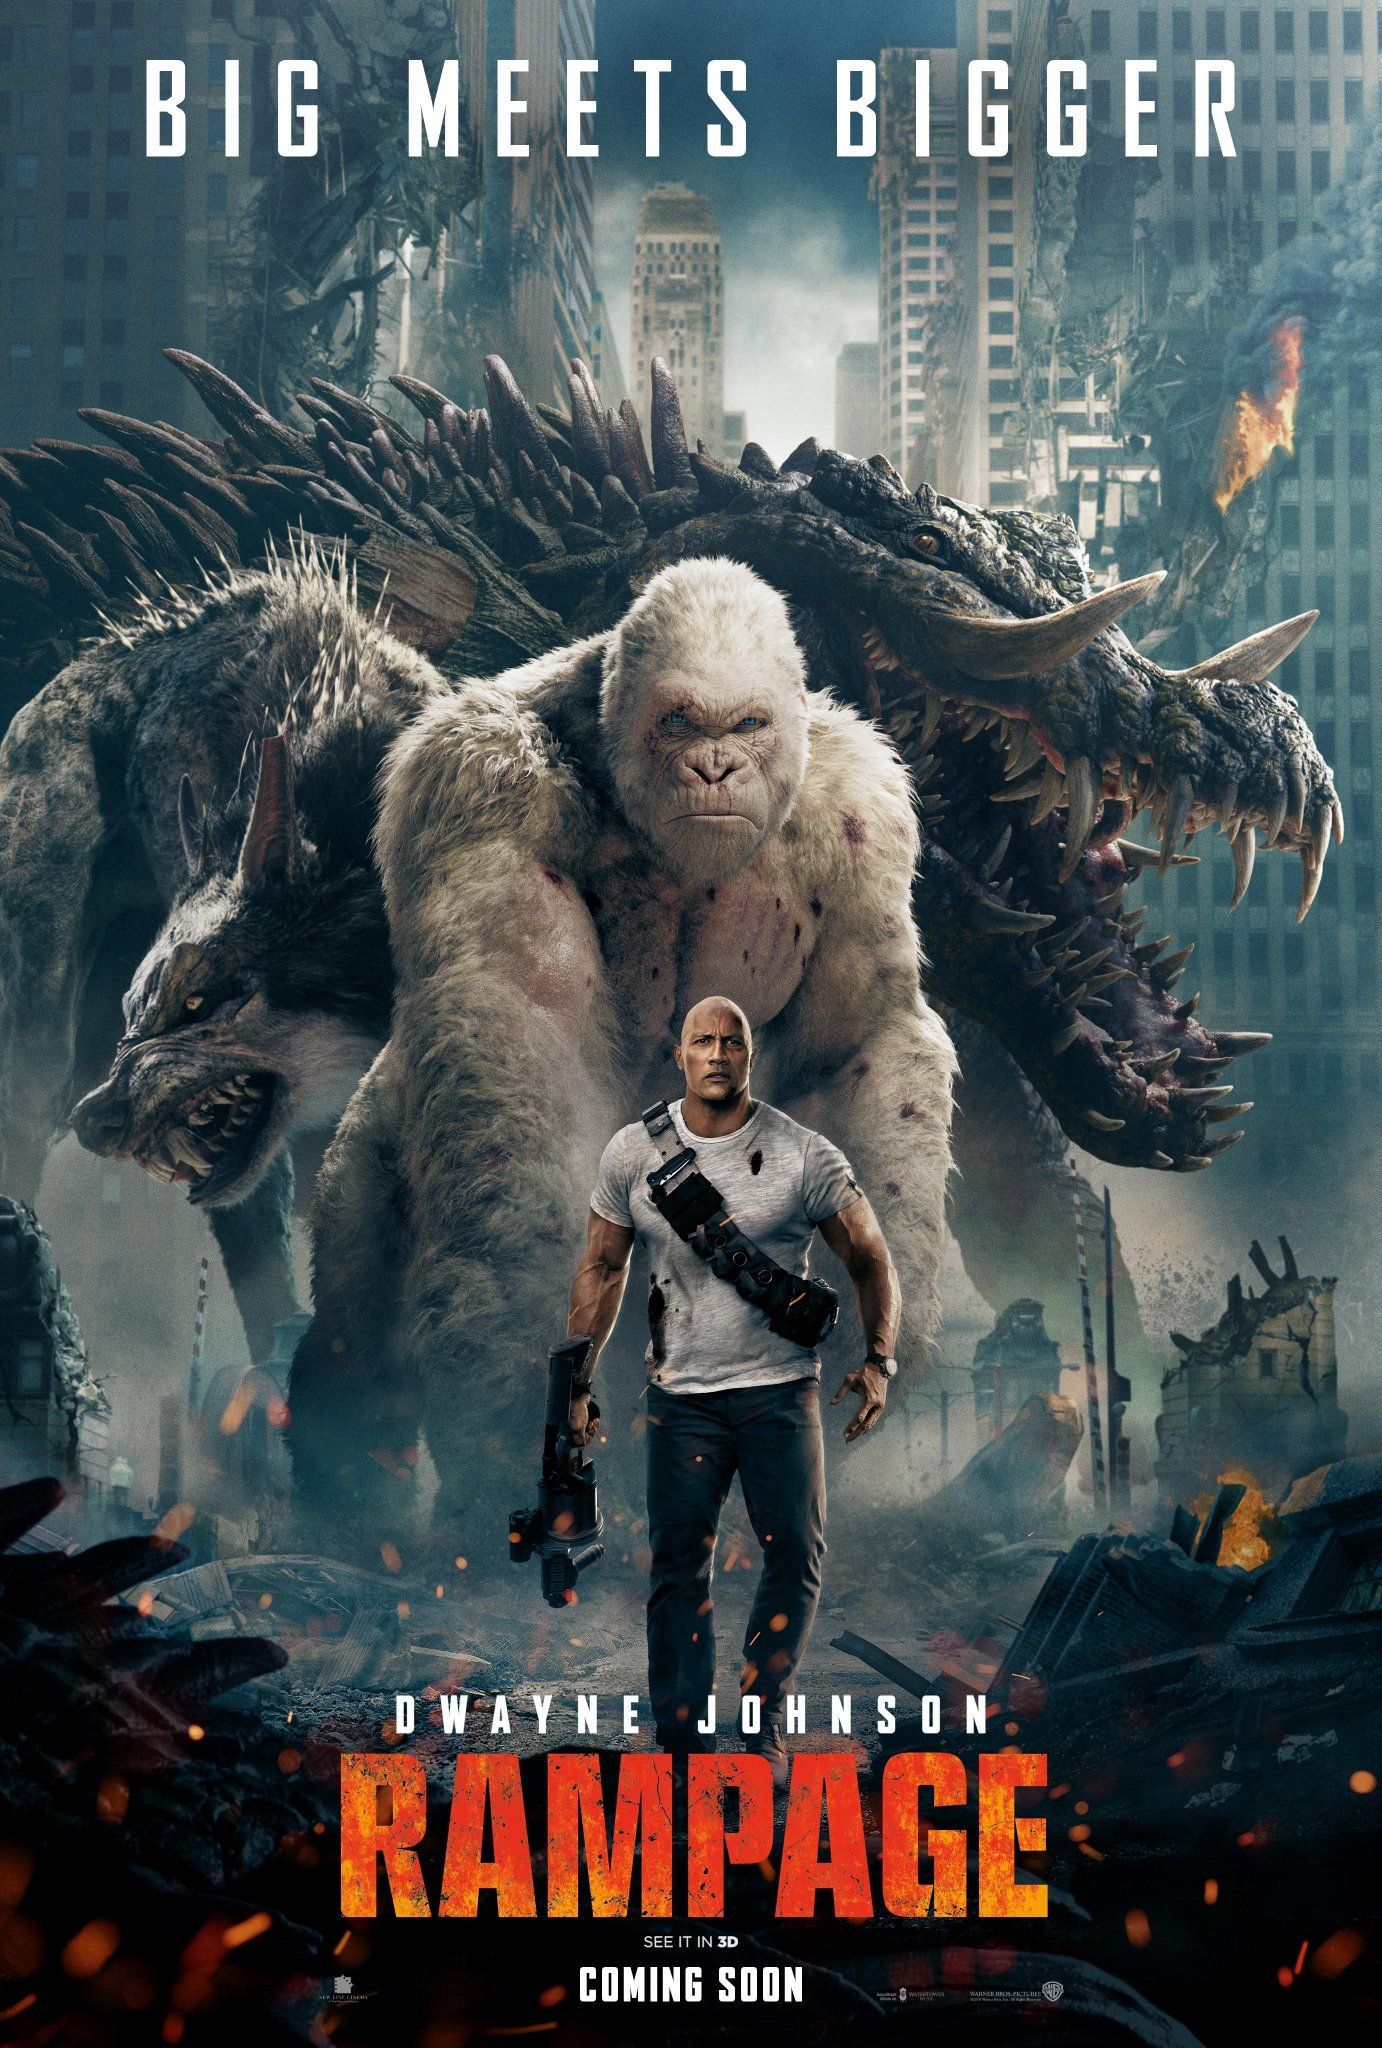 Rampage (2021) Hindi Dubbed Movie HDRip 720p AAC